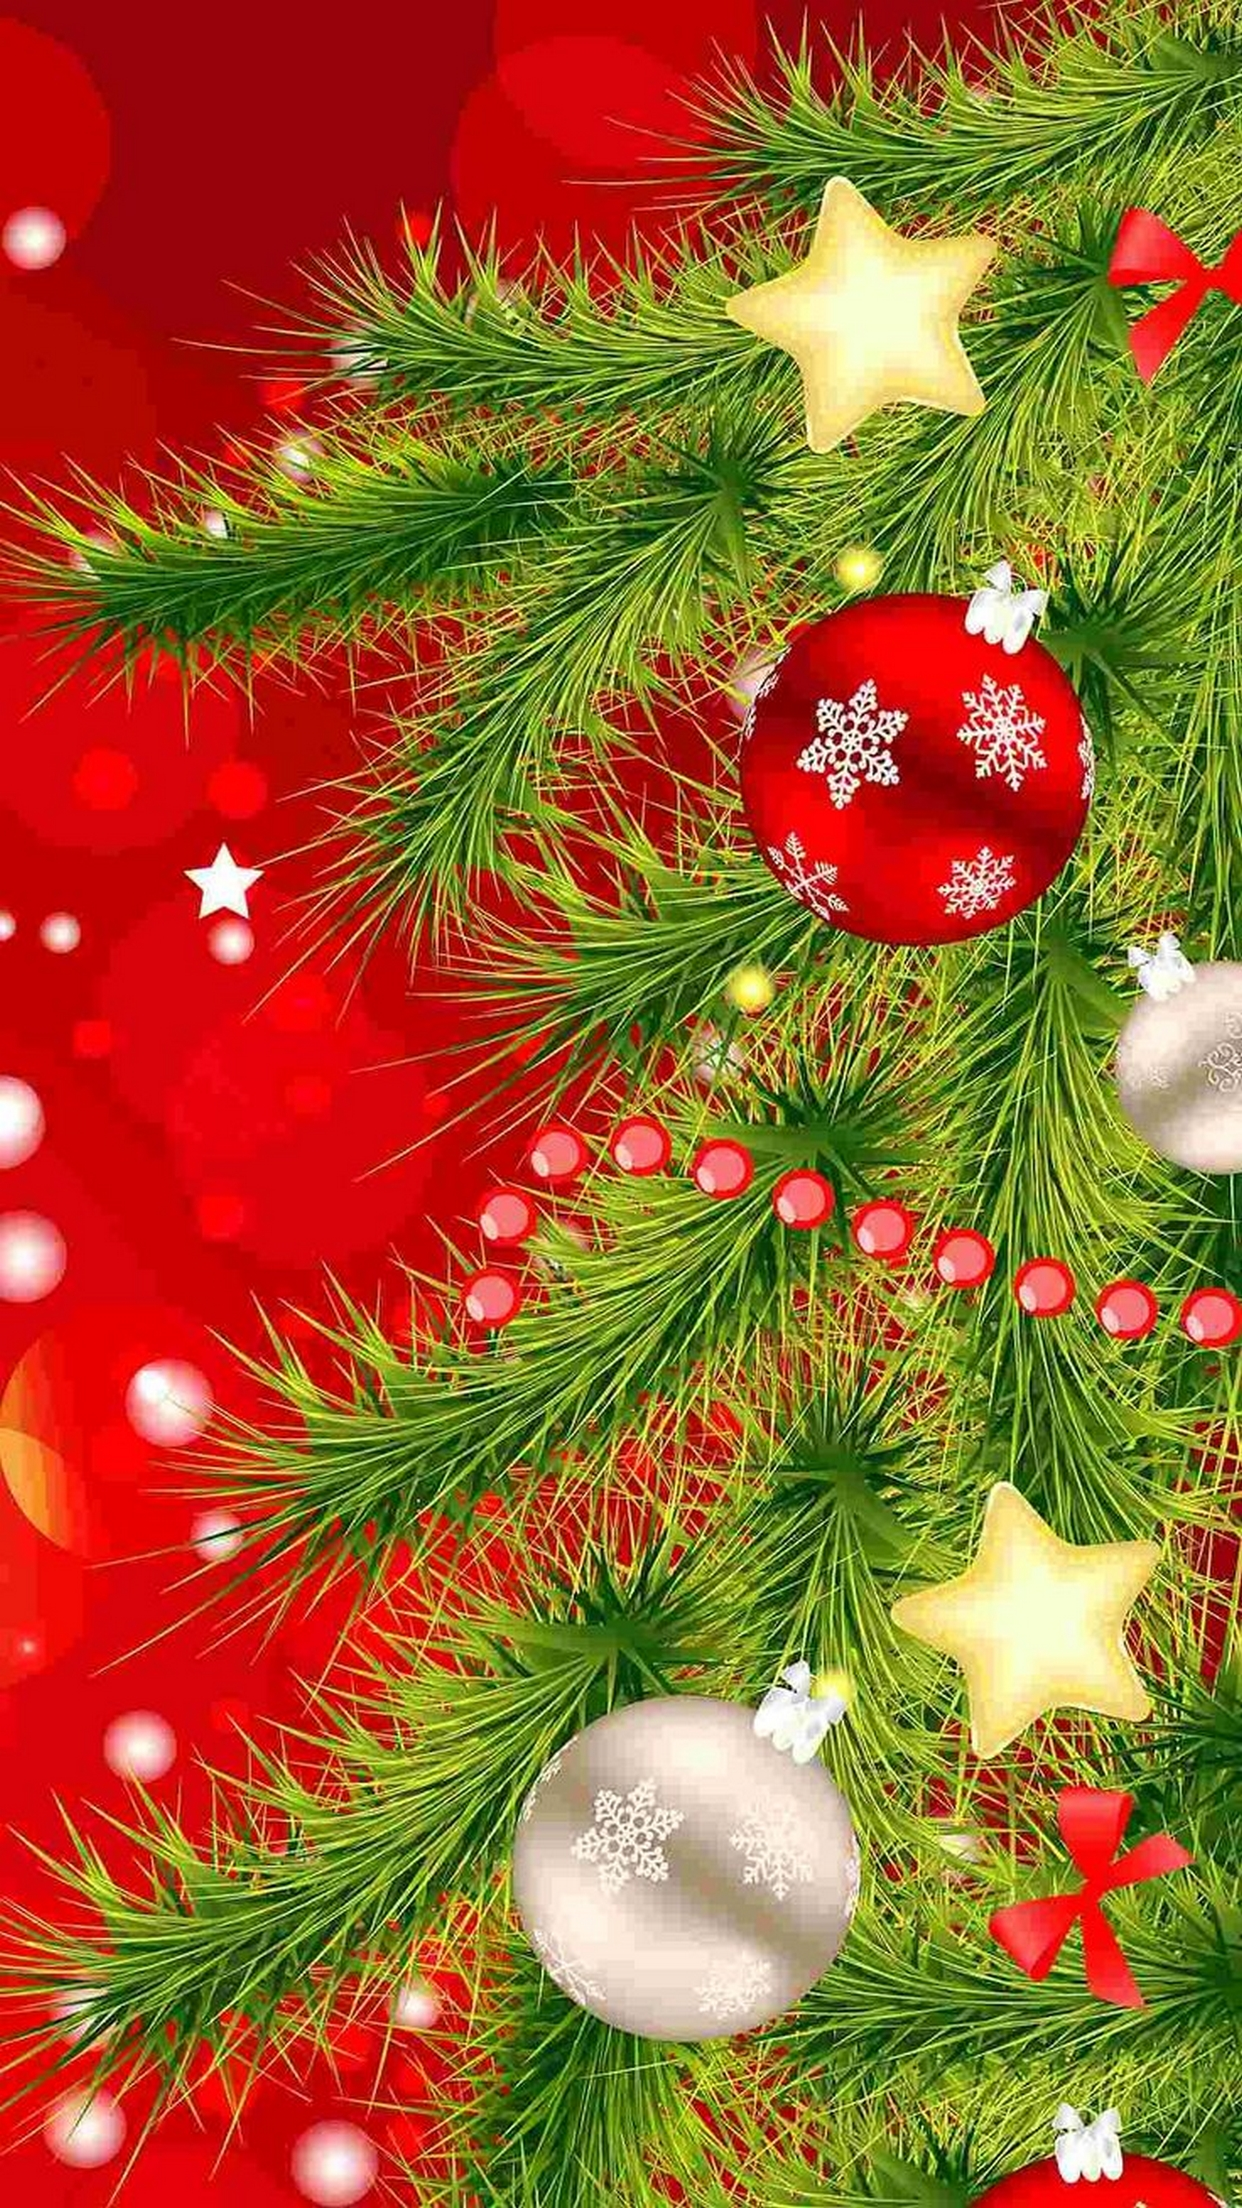 Download Christmas Tree Wallpaper Iphone Gallery